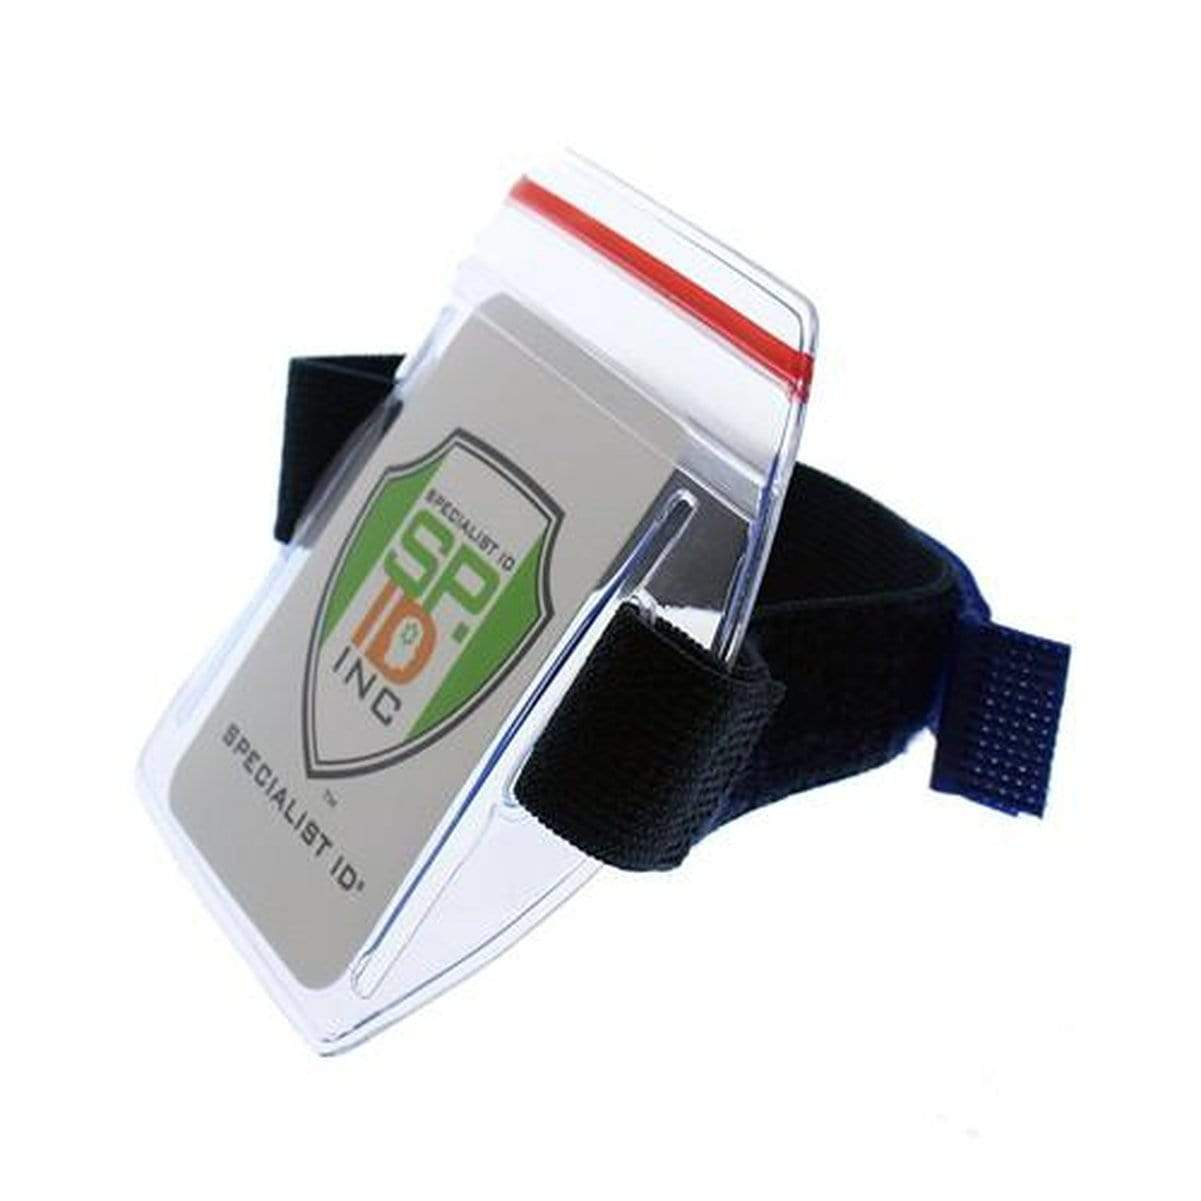 Navy Blue Vertical Armband ID Badge Holders with Zipper Top (504-ARZB & 504-ARZW) 504-ARZB